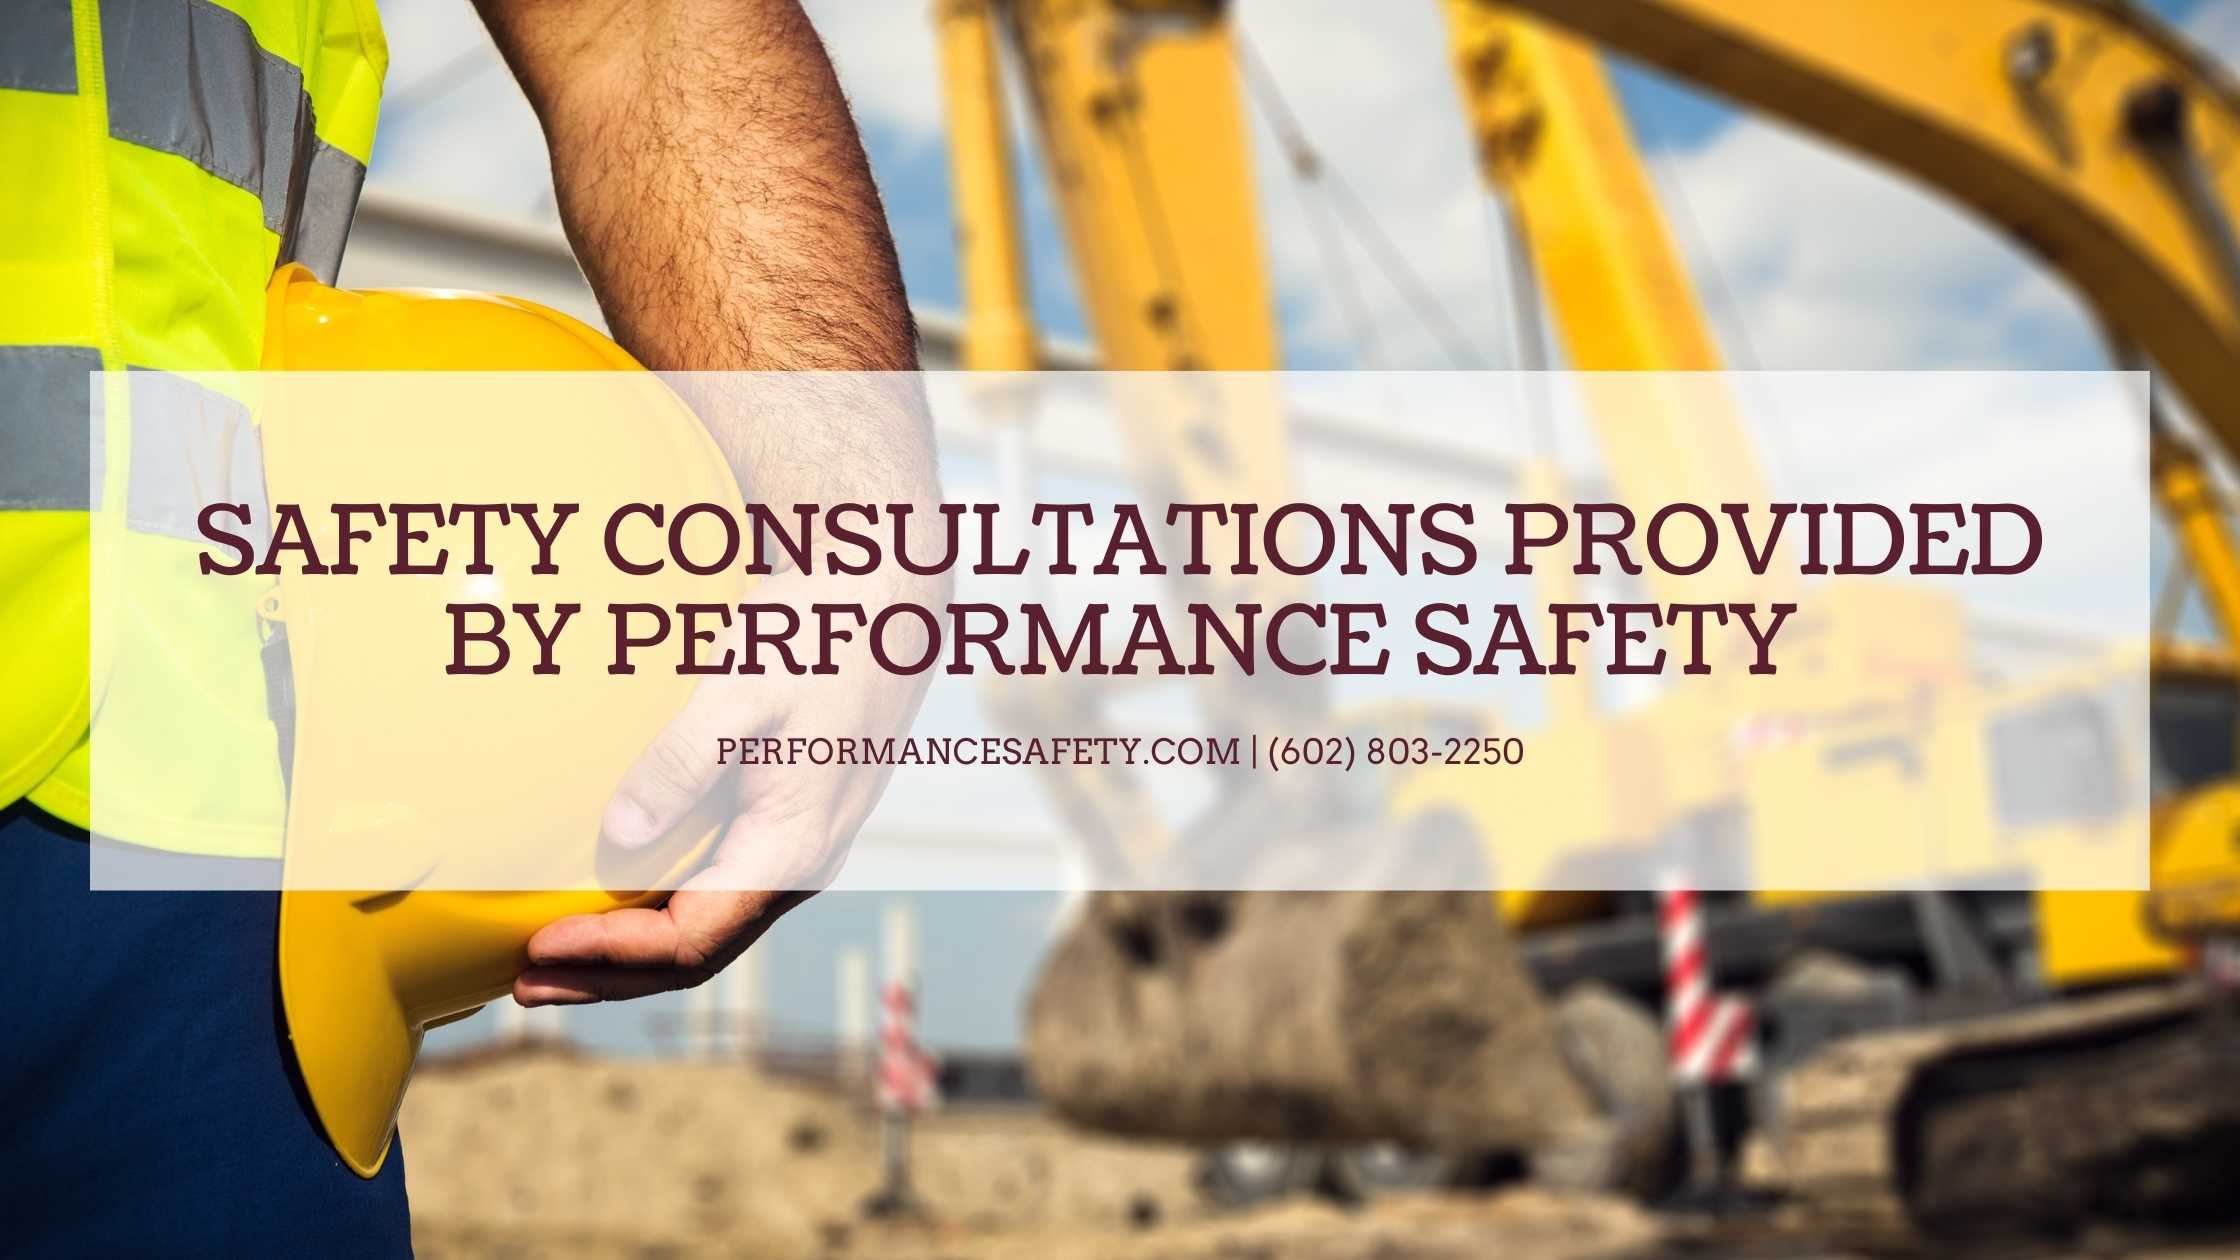 Safety Consultations